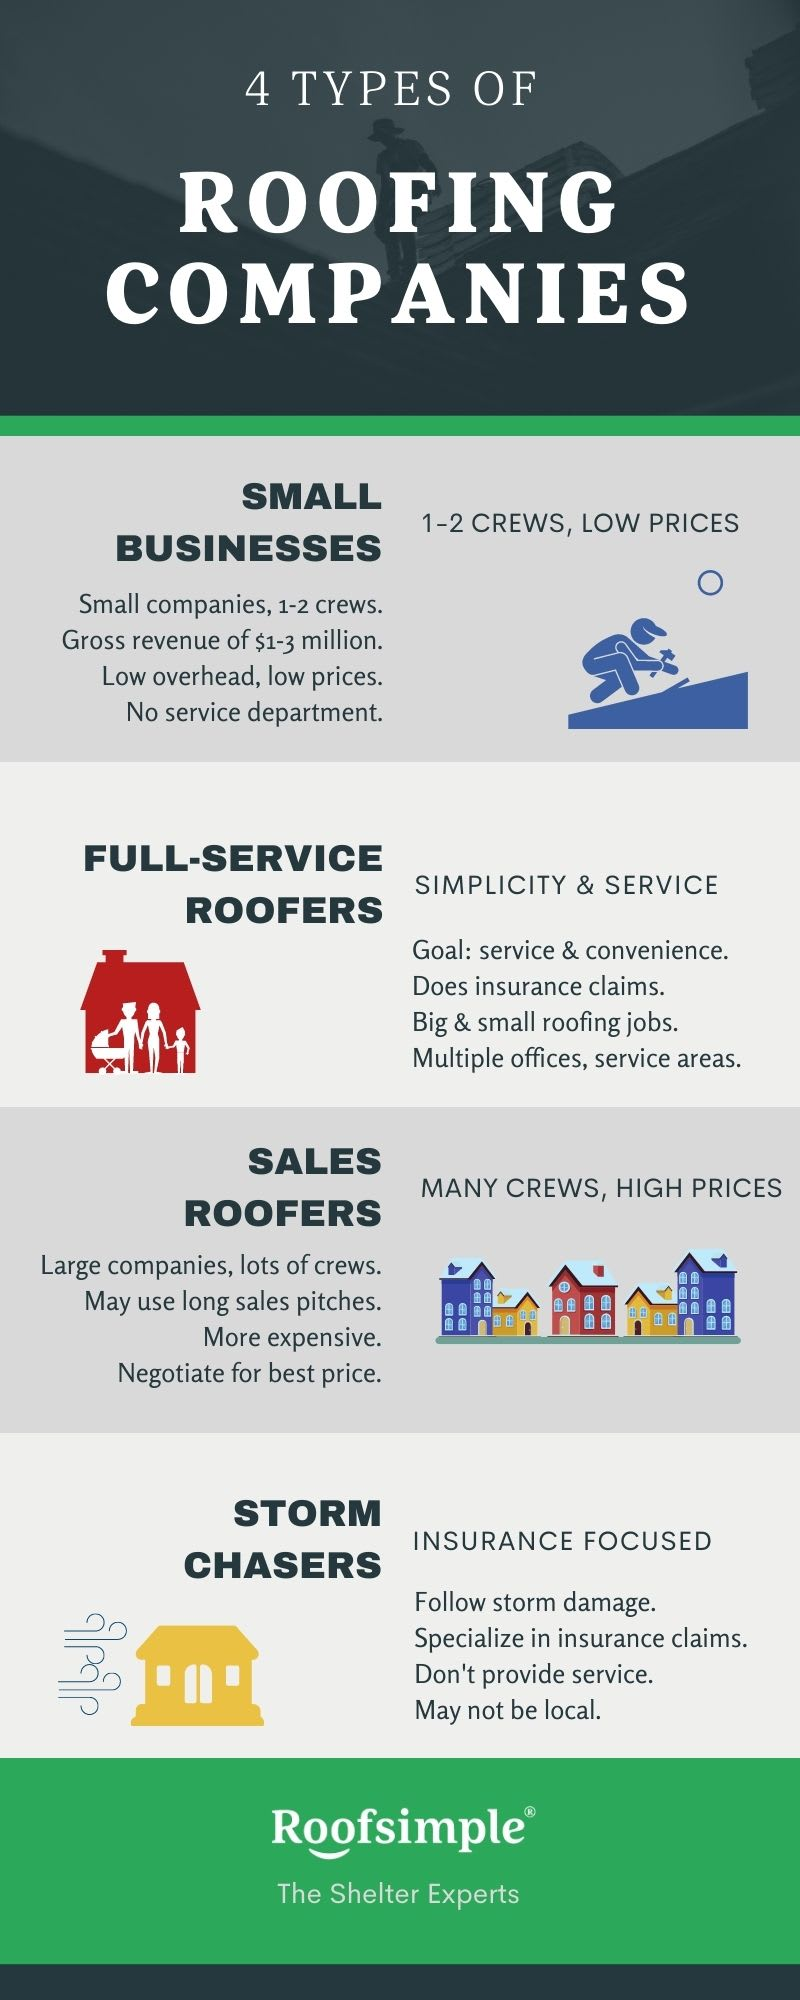 Arizona Roofing Systems Inc - Top 10 Best Mesa Roofers